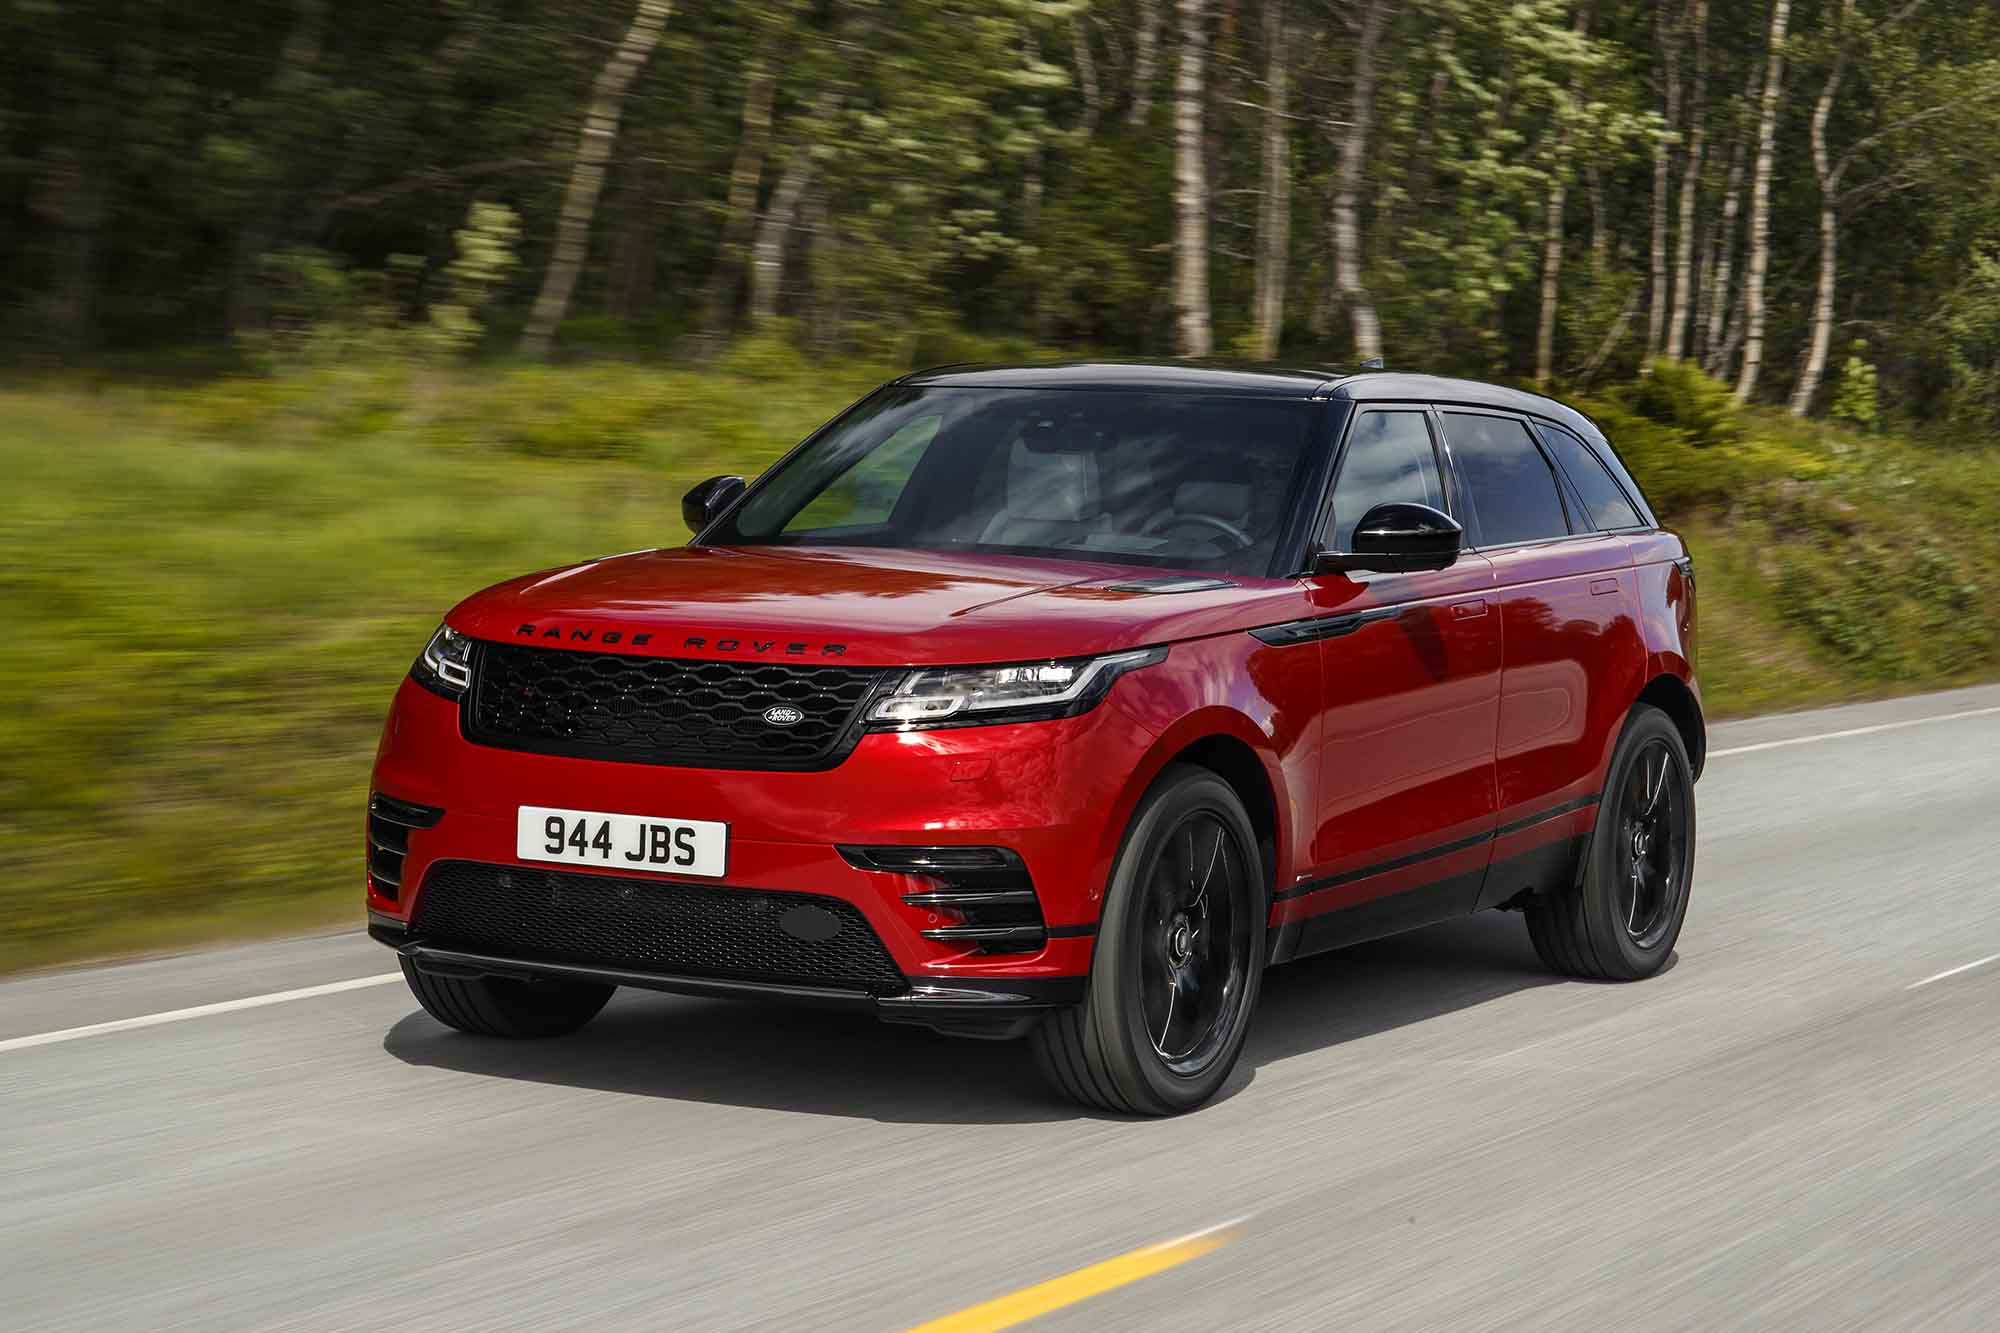 Range rover velar come va su strada bellezza e efficienza for Interno velar